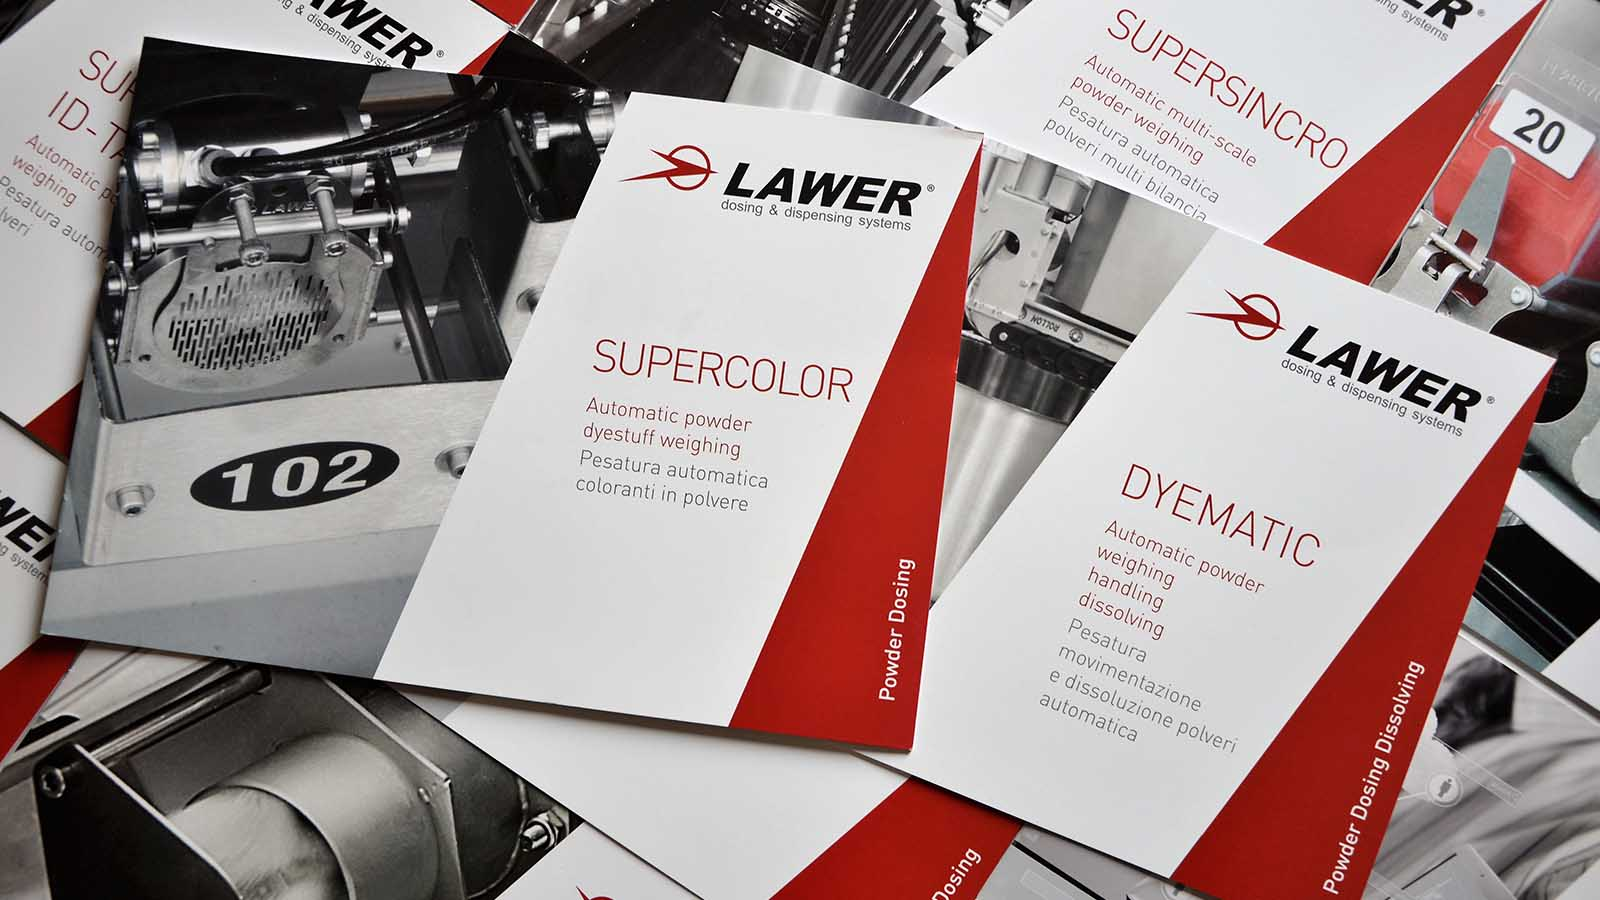 restyling-immagine-coordinata-lawer-2017-supercolor